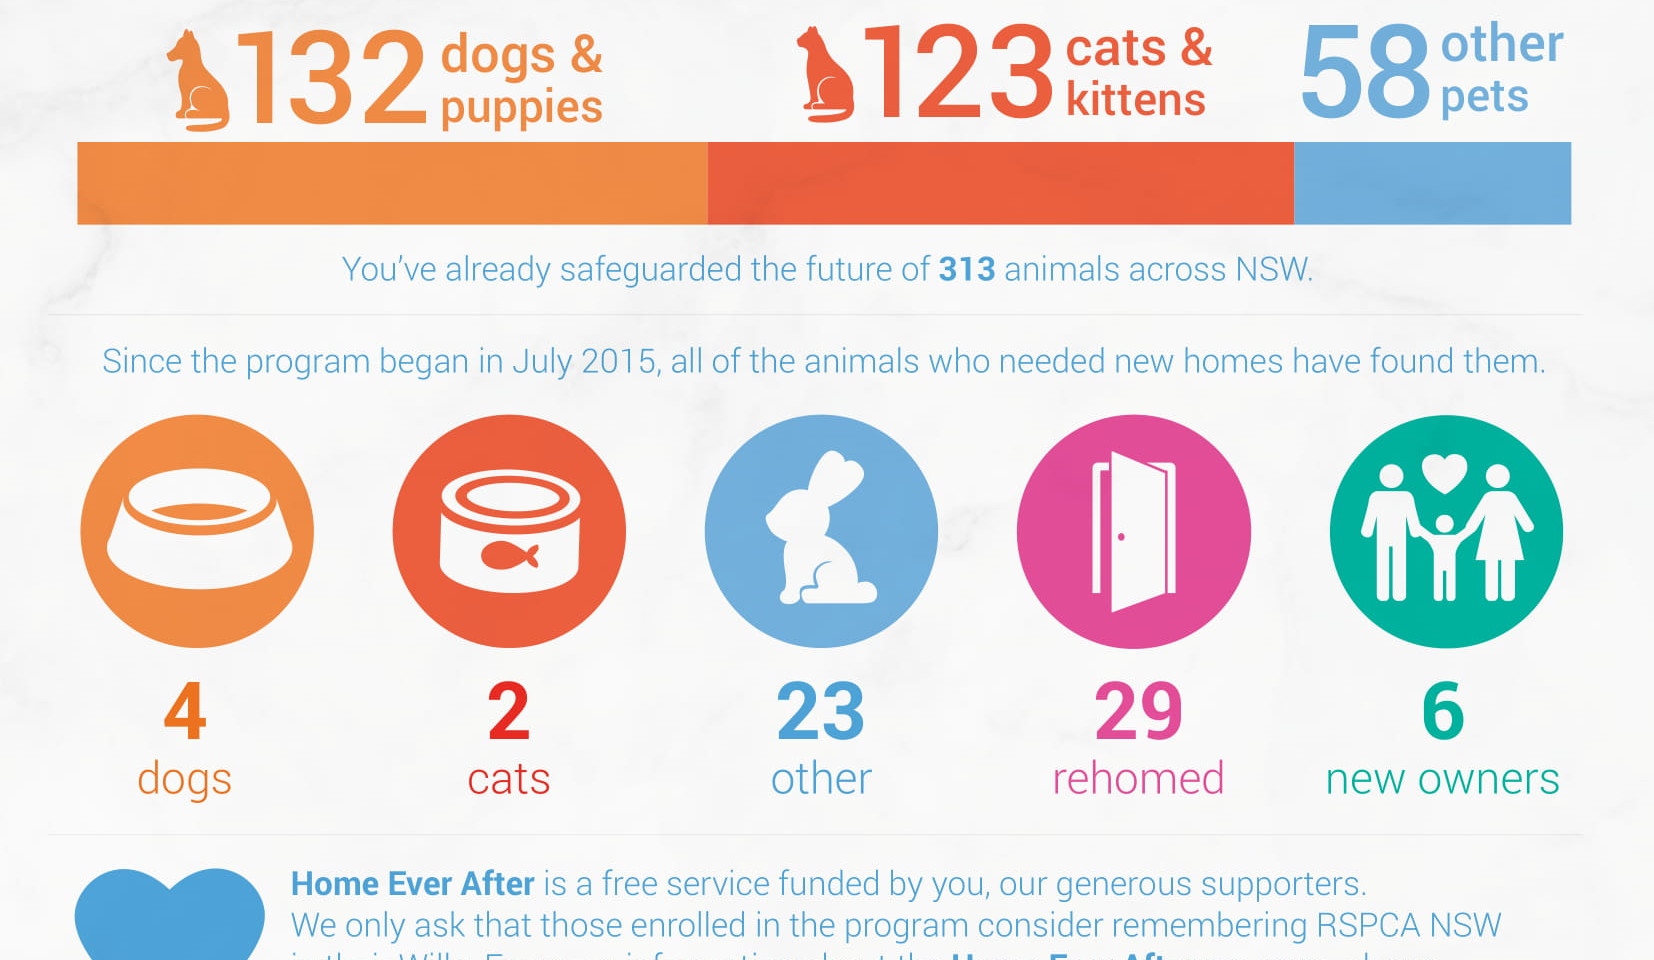 RSPCA NSW / Animal Action Report July